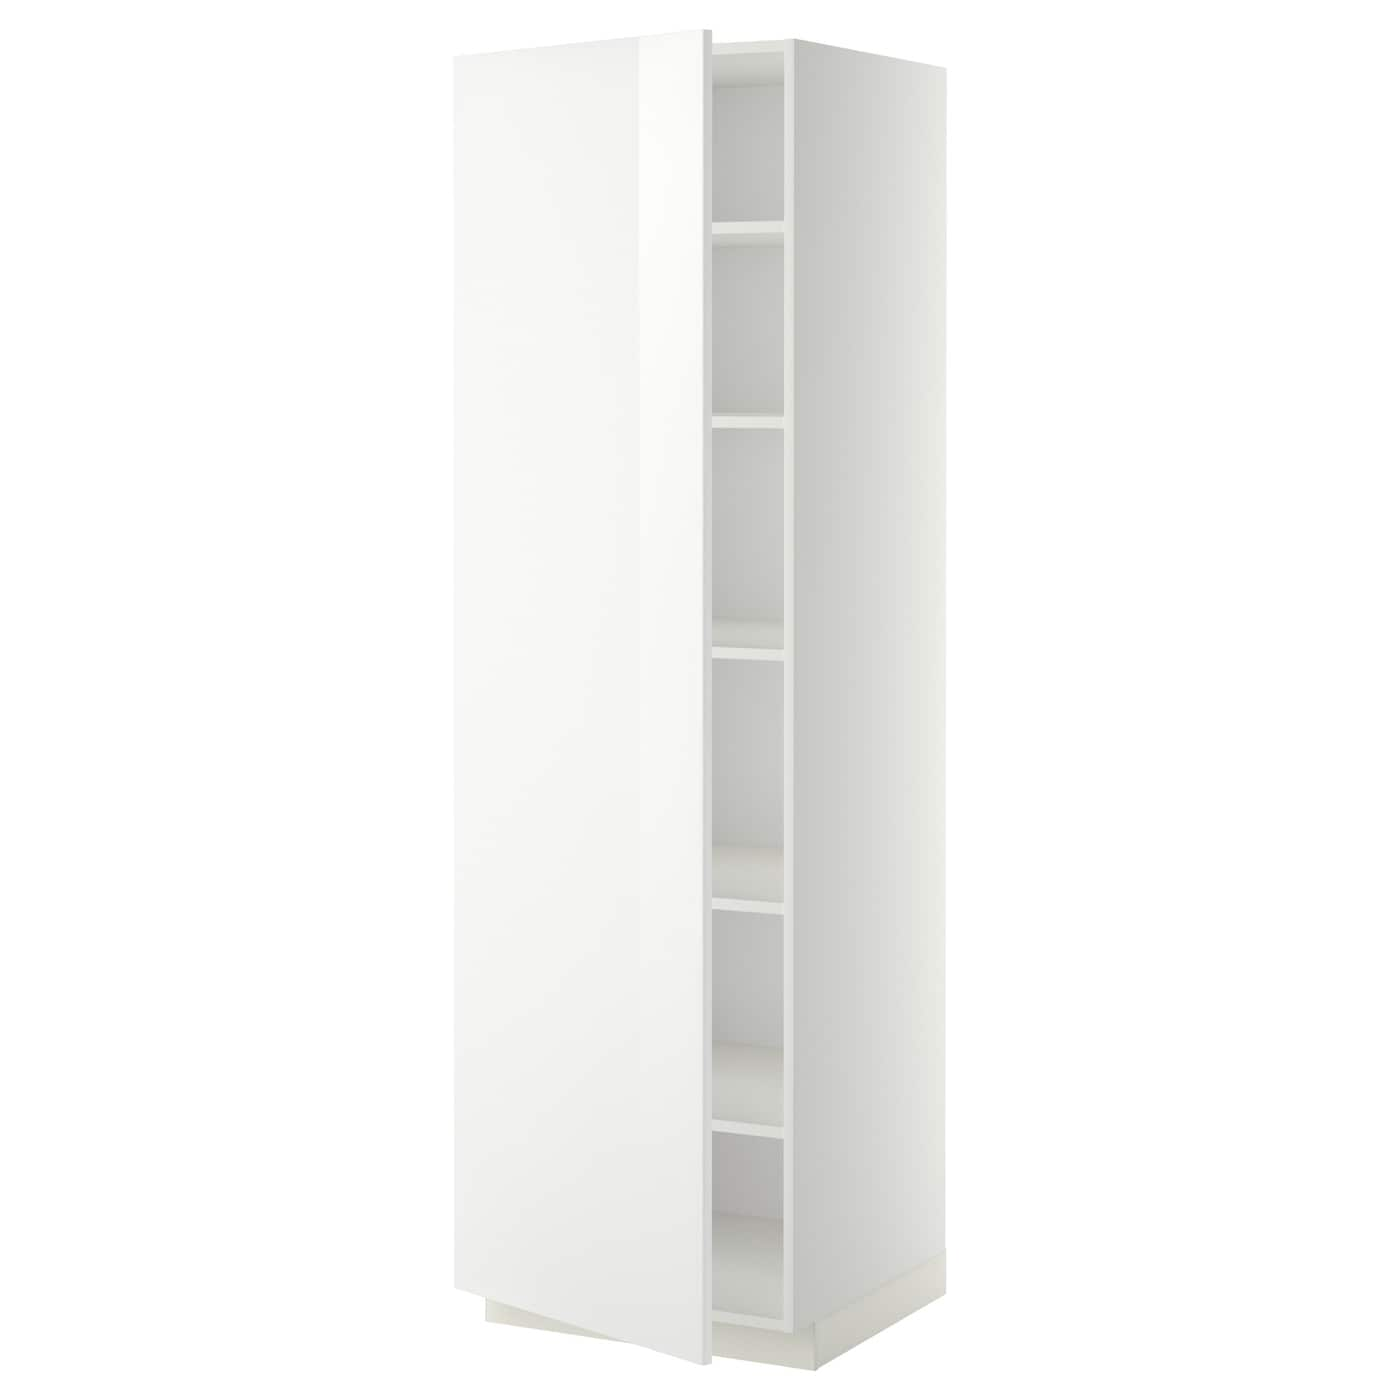 metod high cabinet with shelves white ringhult white 60 x 60 x 200 cm ikea. Black Bedroom Furniture Sets. Home Design Ideas